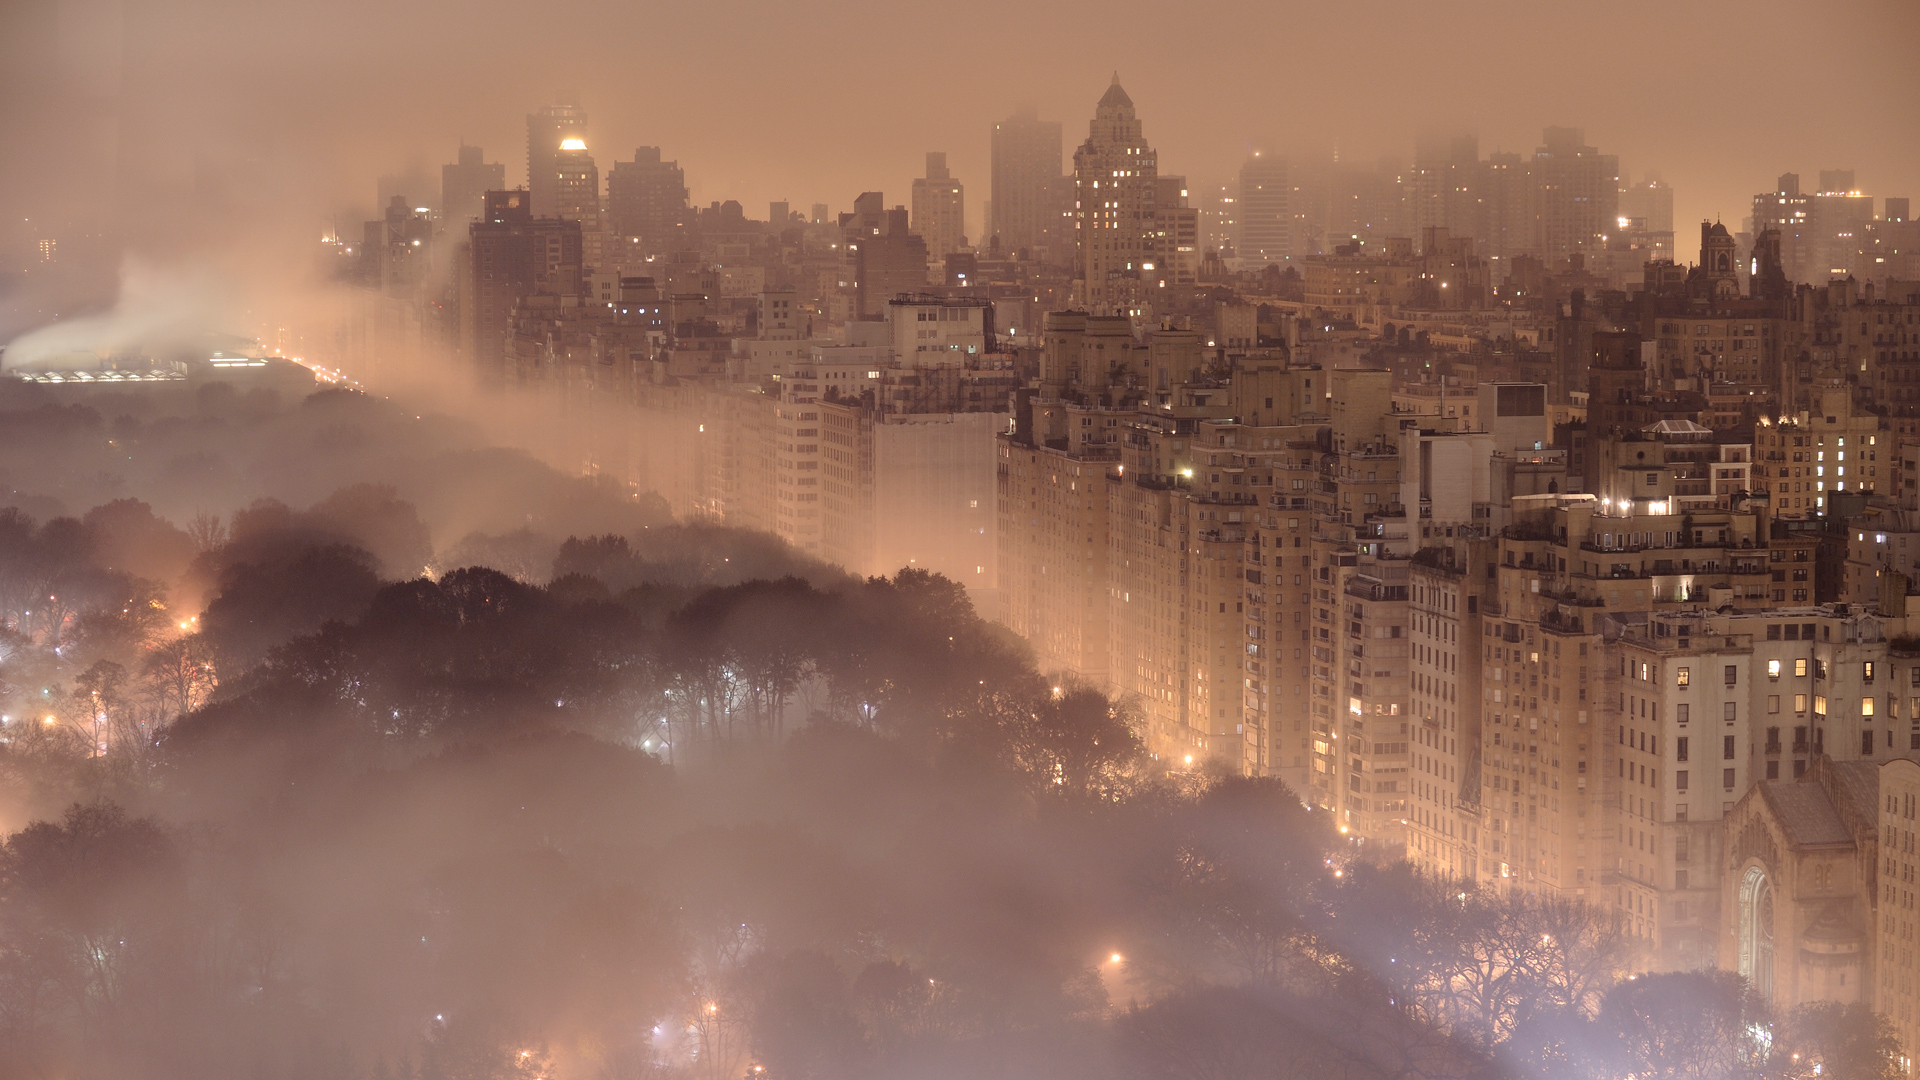 night fog new york HD Wallpaper